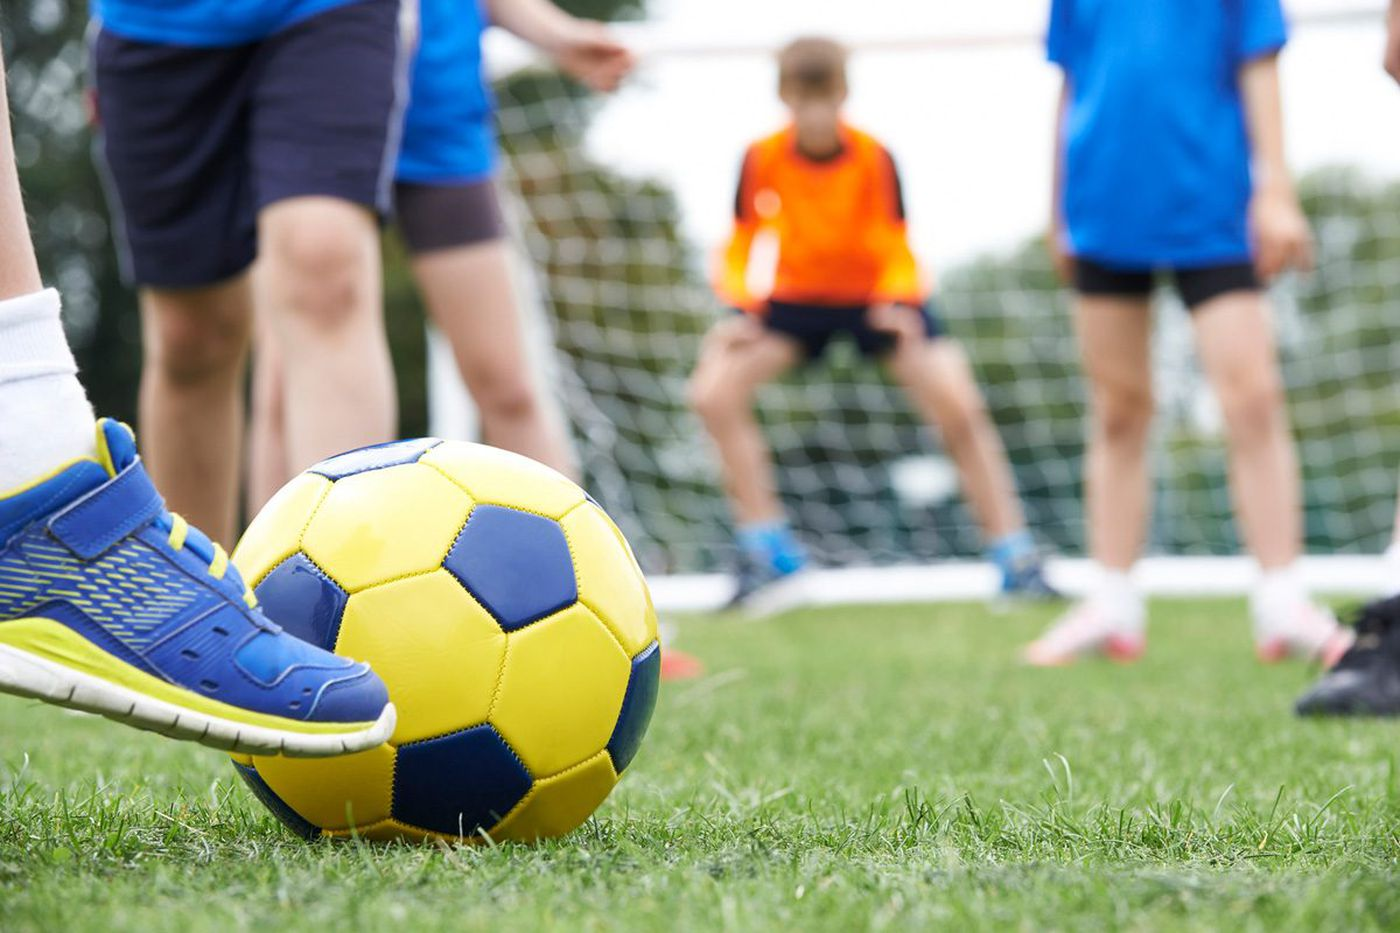 Should kids play contact sports?